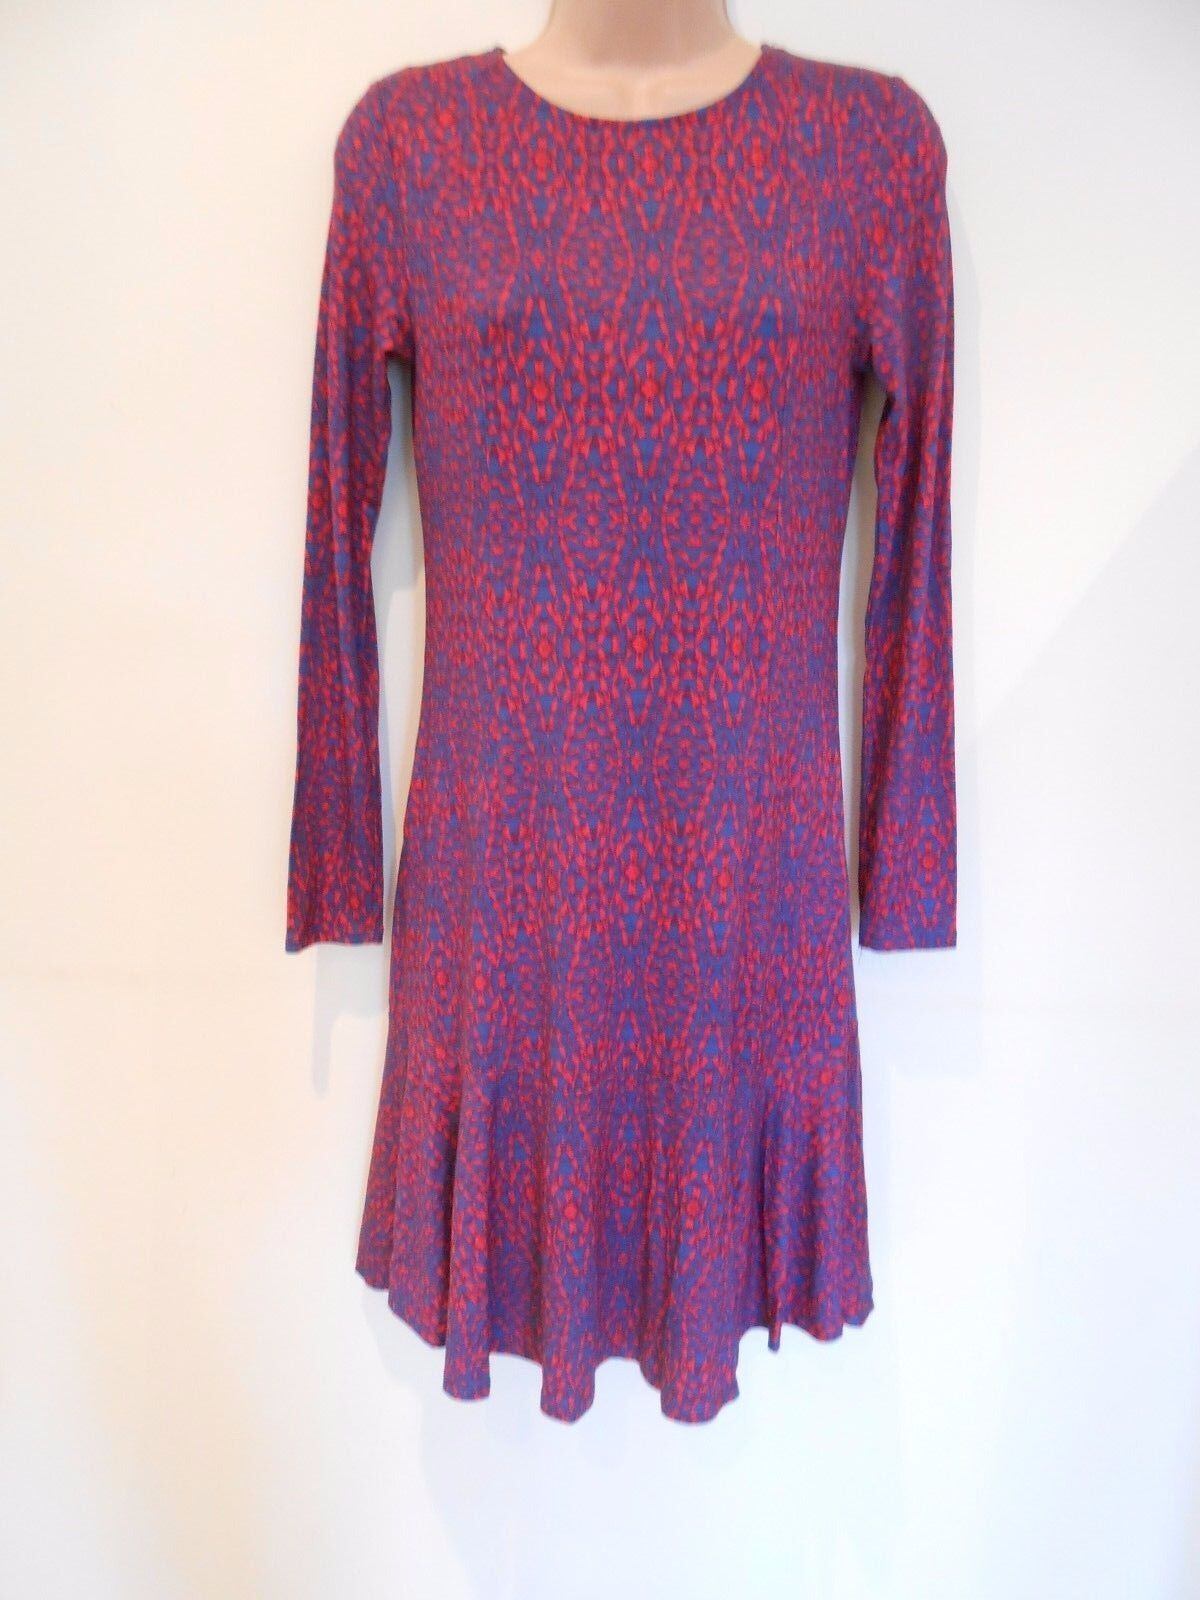 M&S Charleston Tight Shift Straight Party Dancing Dress (NEW) Sizes 6 or 10